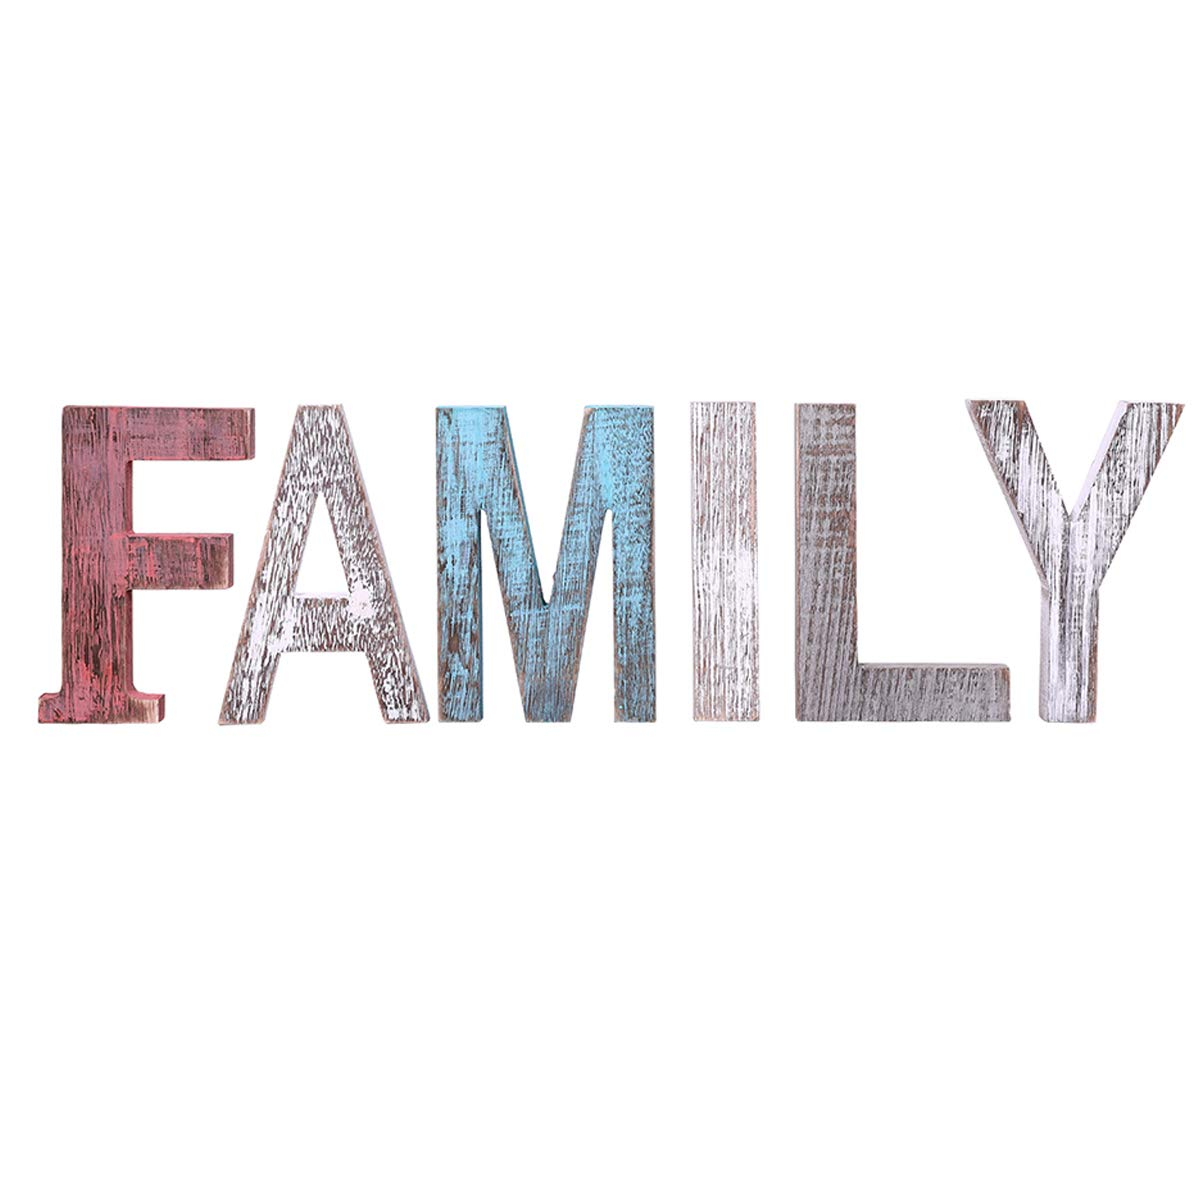 """Comfify """"Family"""" Decorative Wooden Letters – Large Wood Letters for Wall Décor in Rustic Blue, White and Grey – Rustic Home Decoration for Living Room - Rustic Home Décor Accents – Farmhouse Decor"""